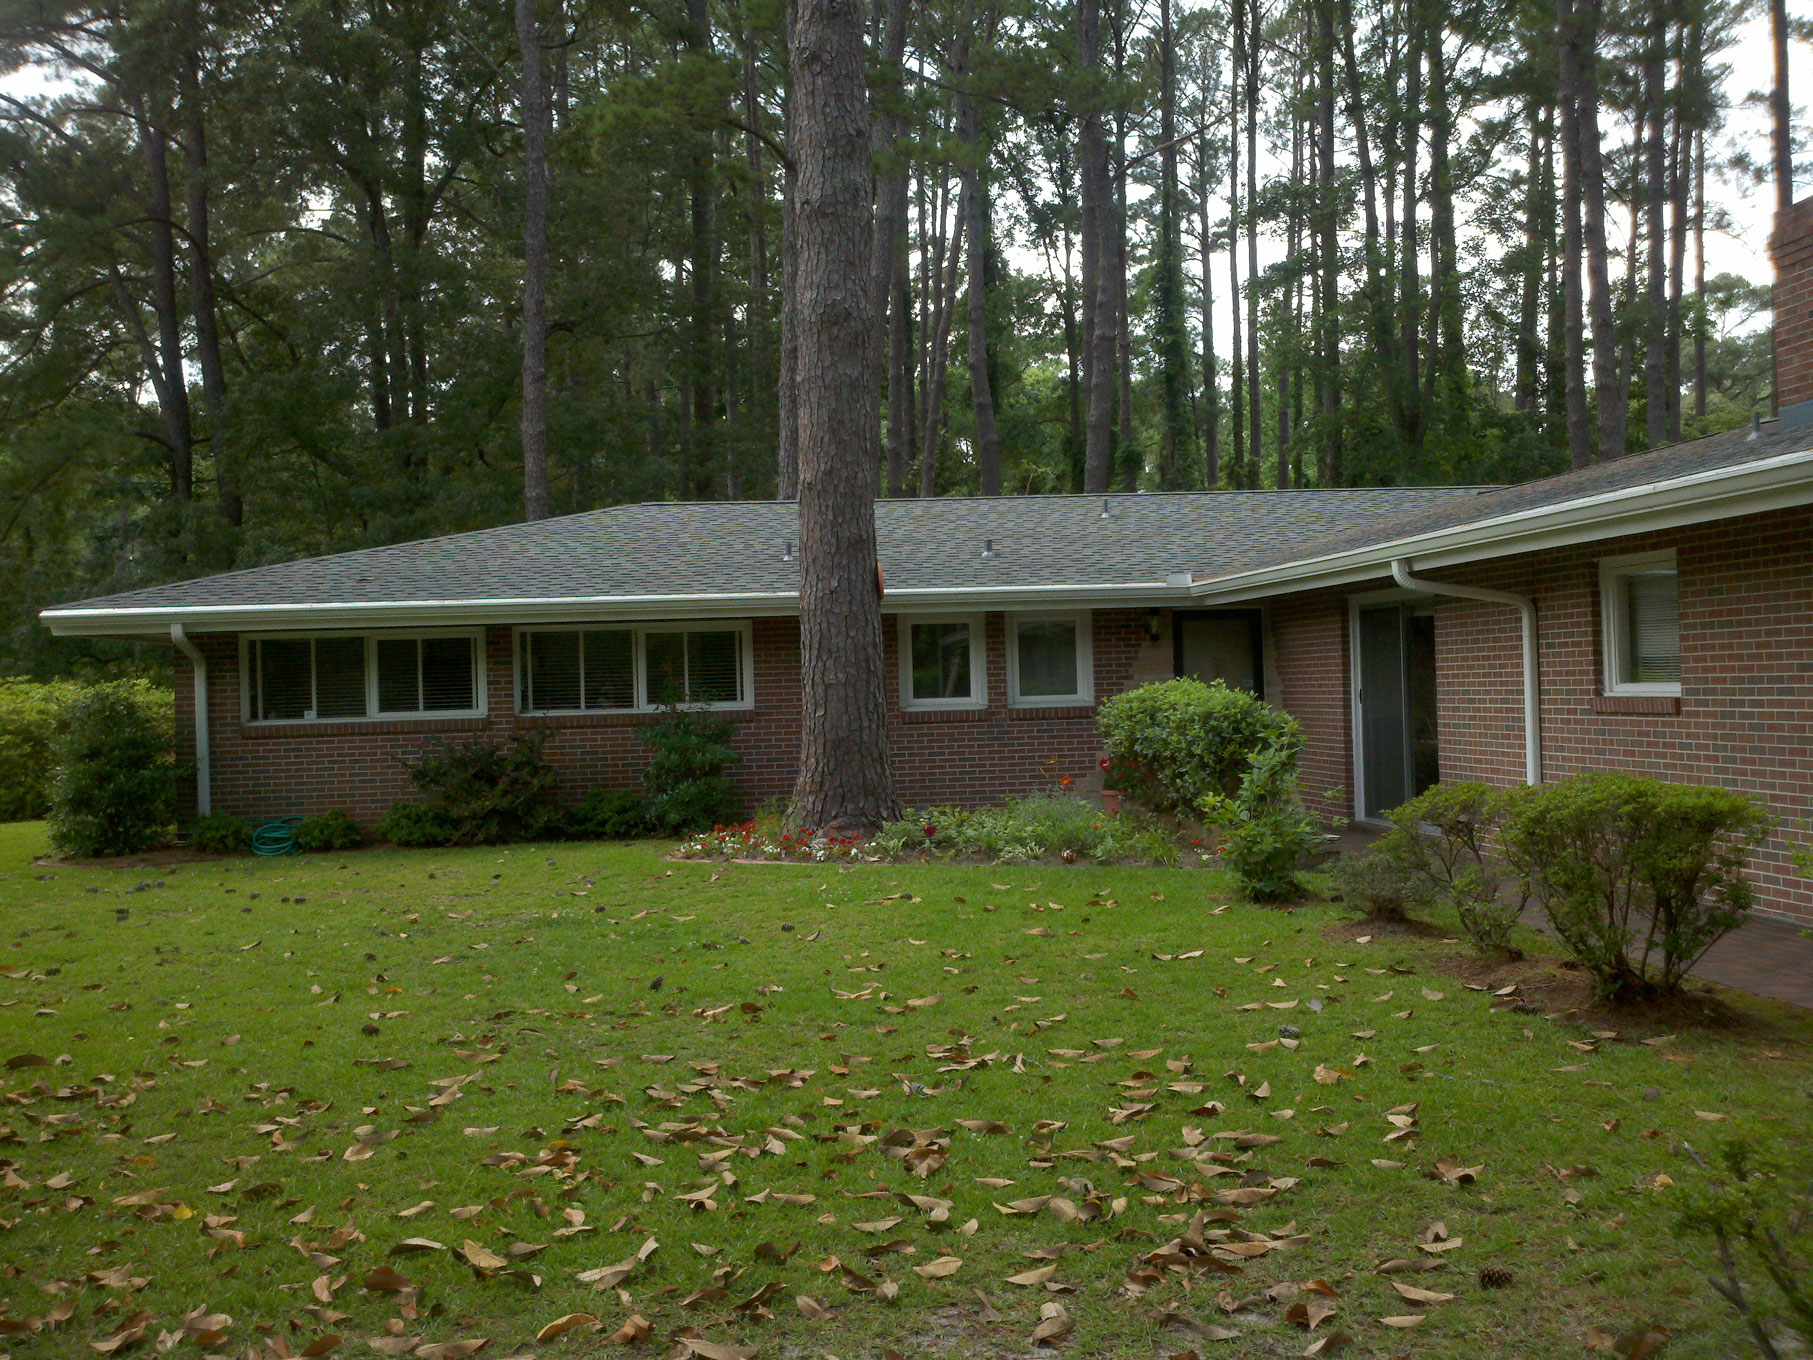 1953   The Elden House, 101 Yacht Club Road, New Bern NC. Sold To Carmi And  Alice Winters. Sold In 2016 To Steve Winters.